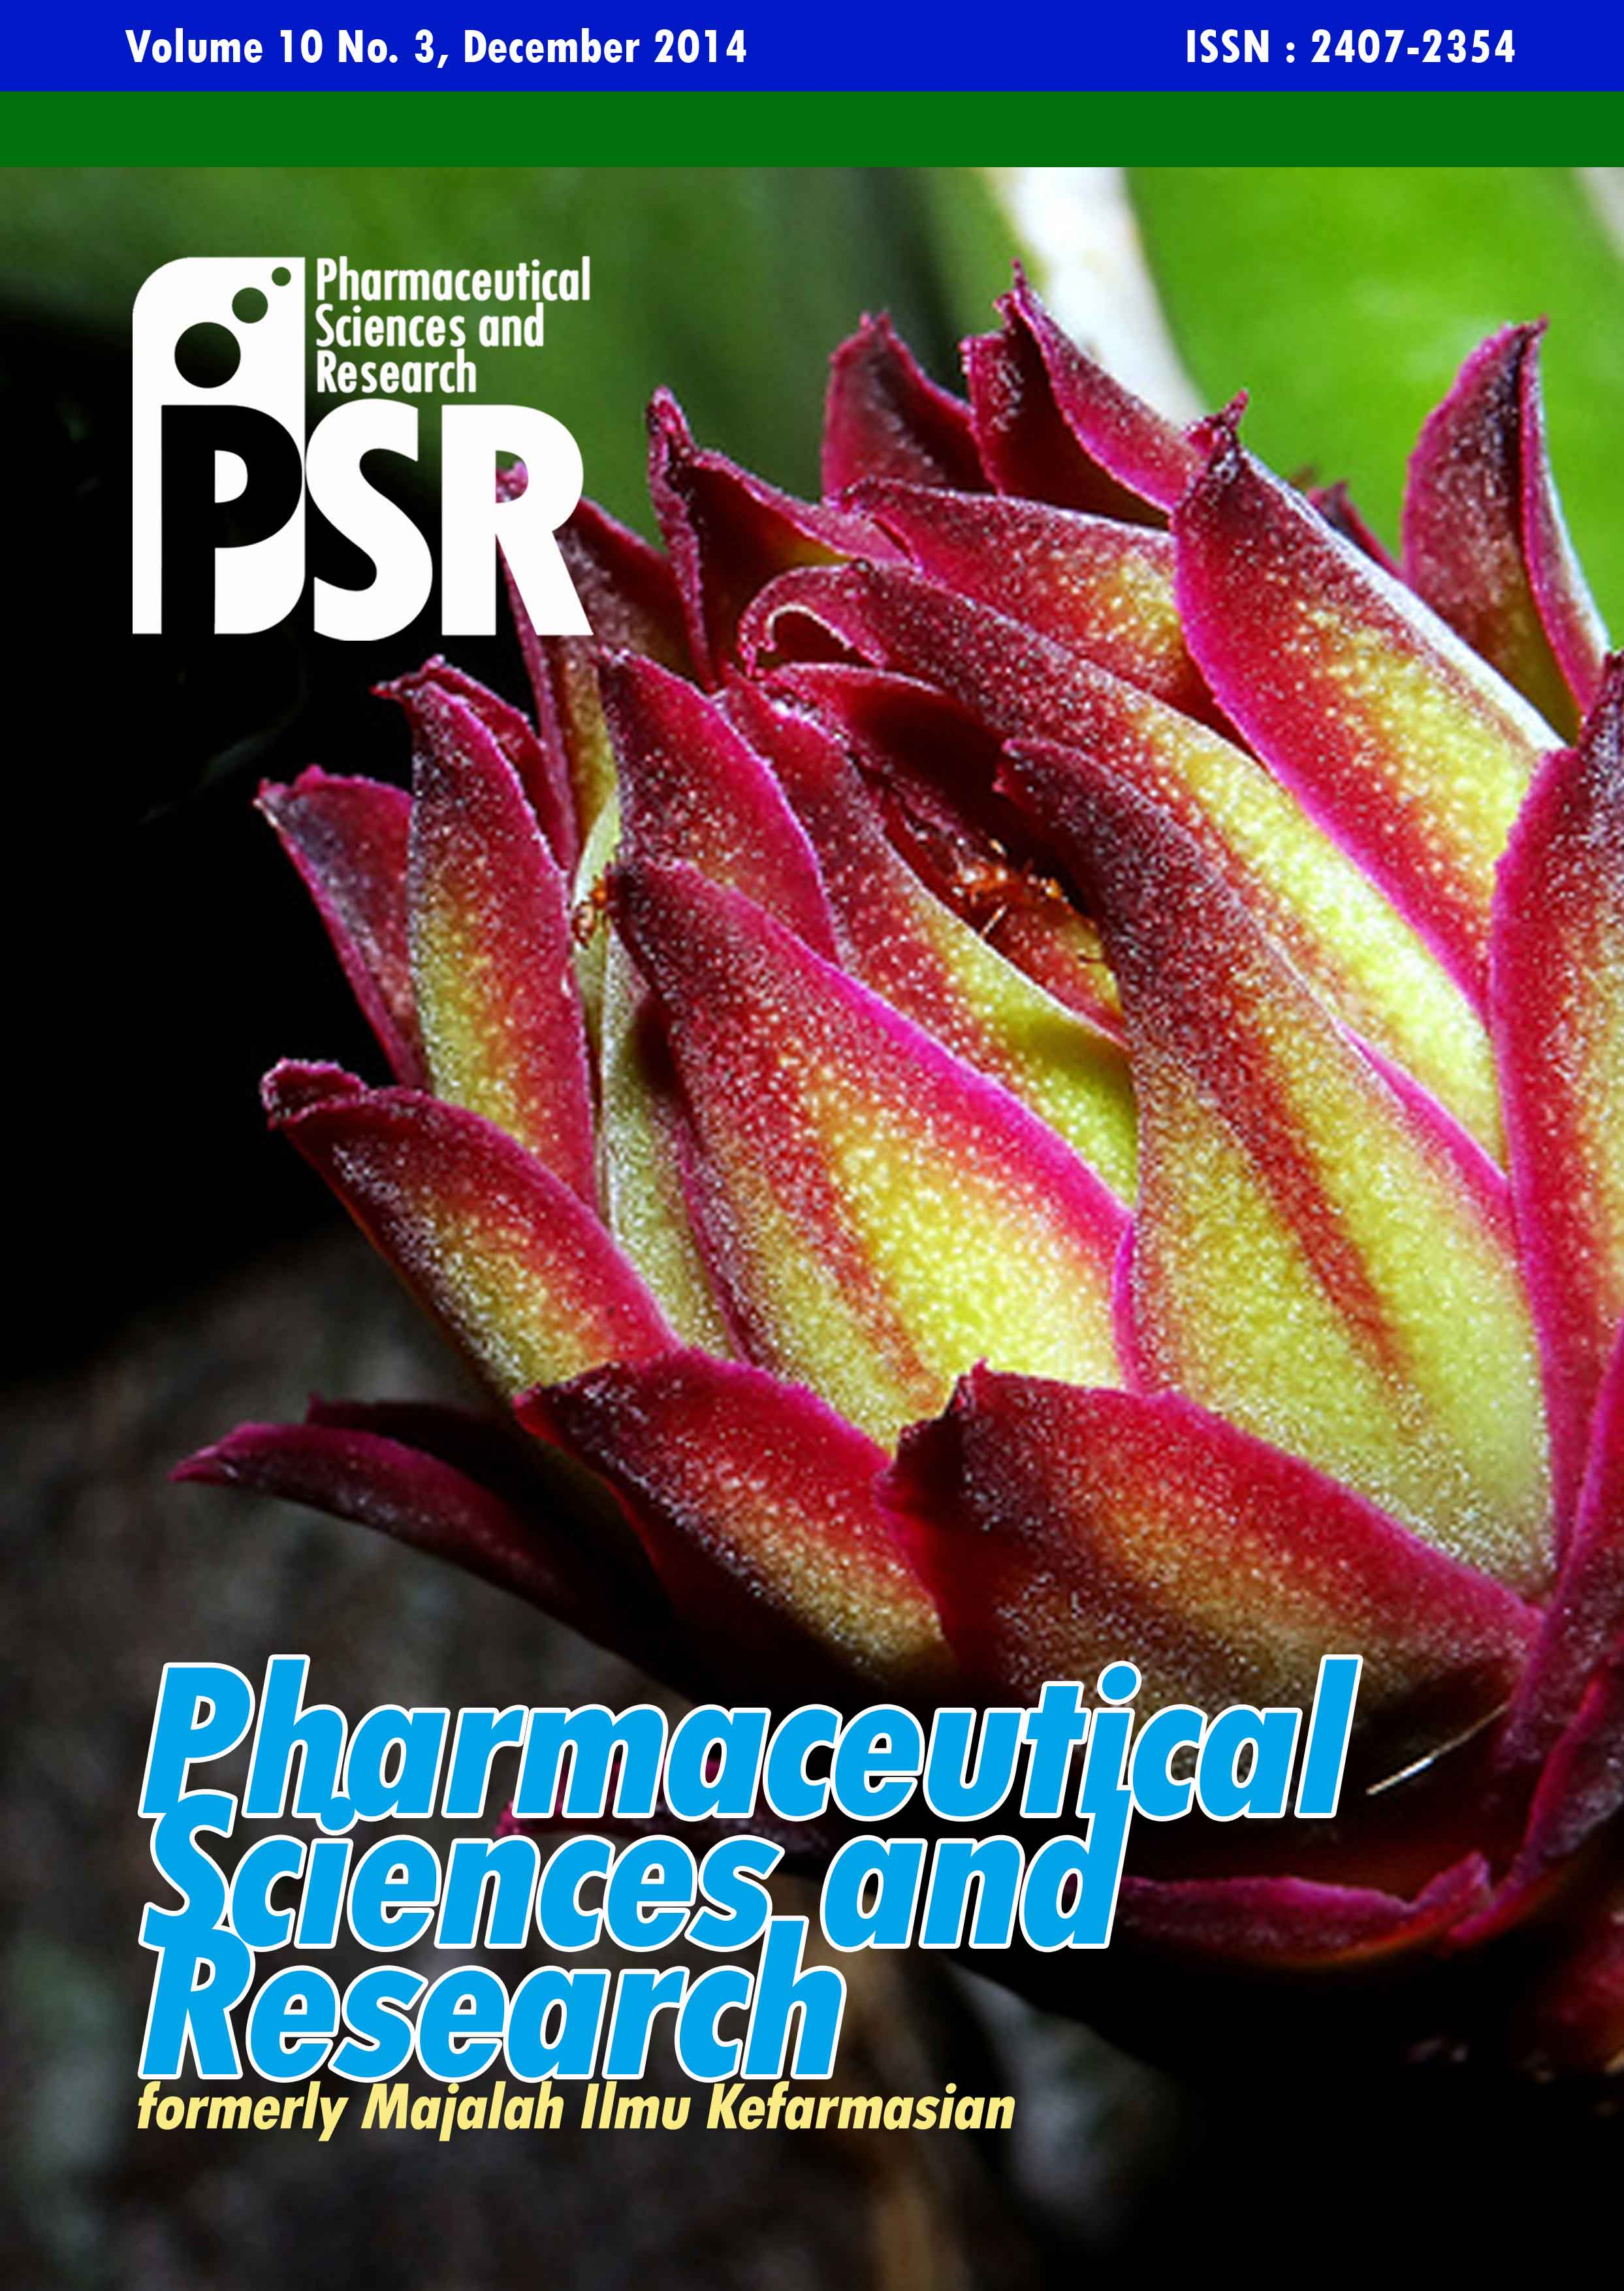 Pharmaceutical Sciences and Research